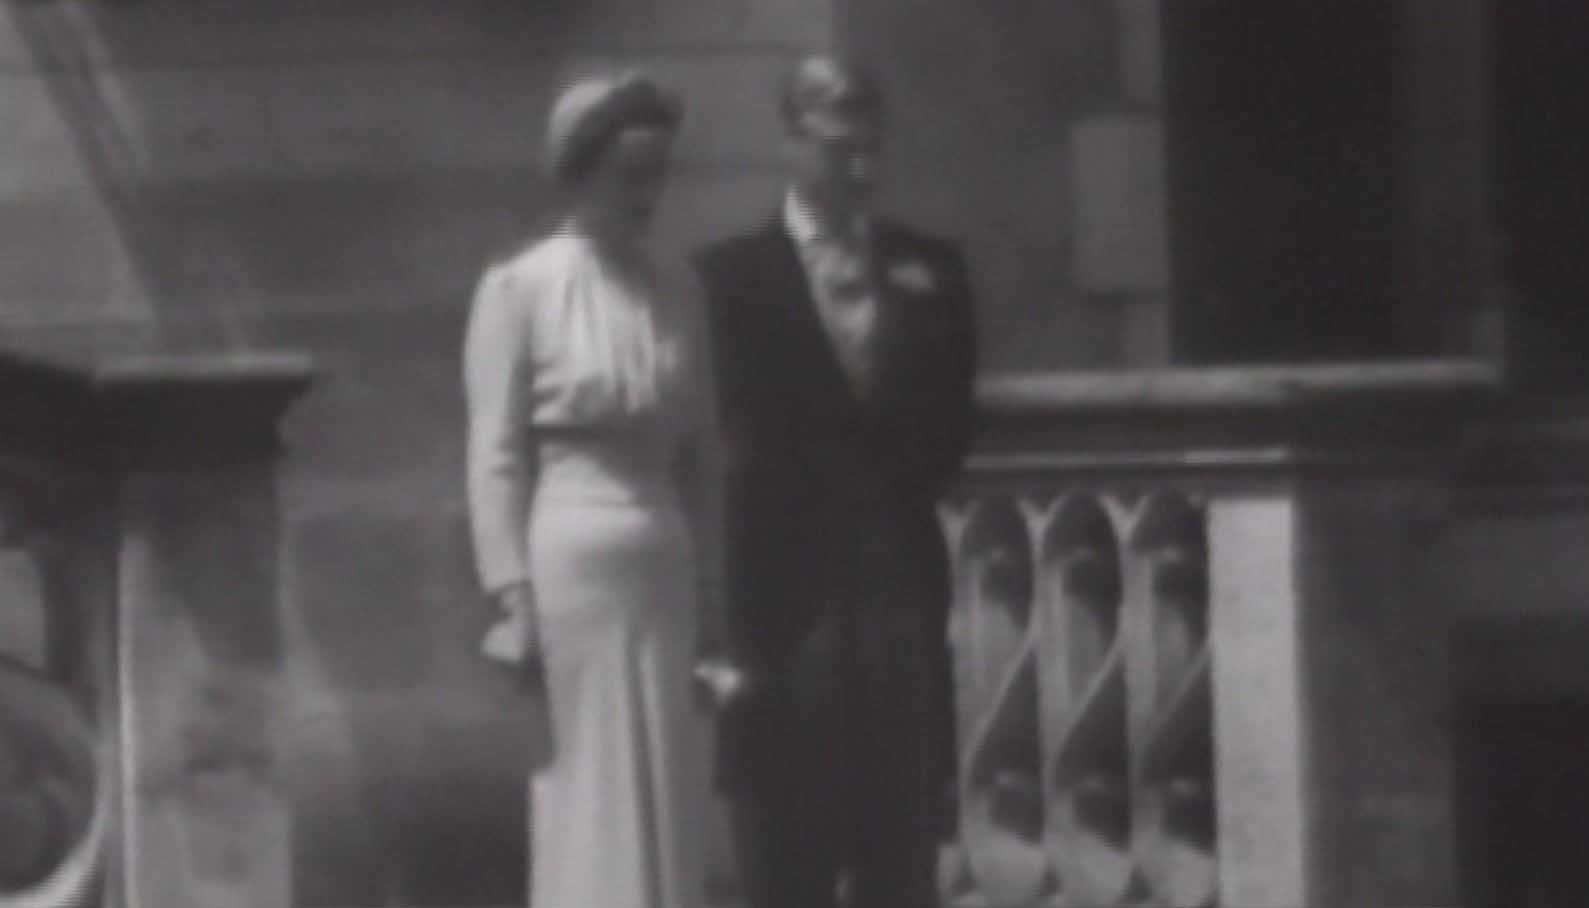 Much has changed in the British monarchy since American divorcee Wallis Simpson married Prince Edward, the Duke of Windsor. (Source: Universal Newsreel/CNN)